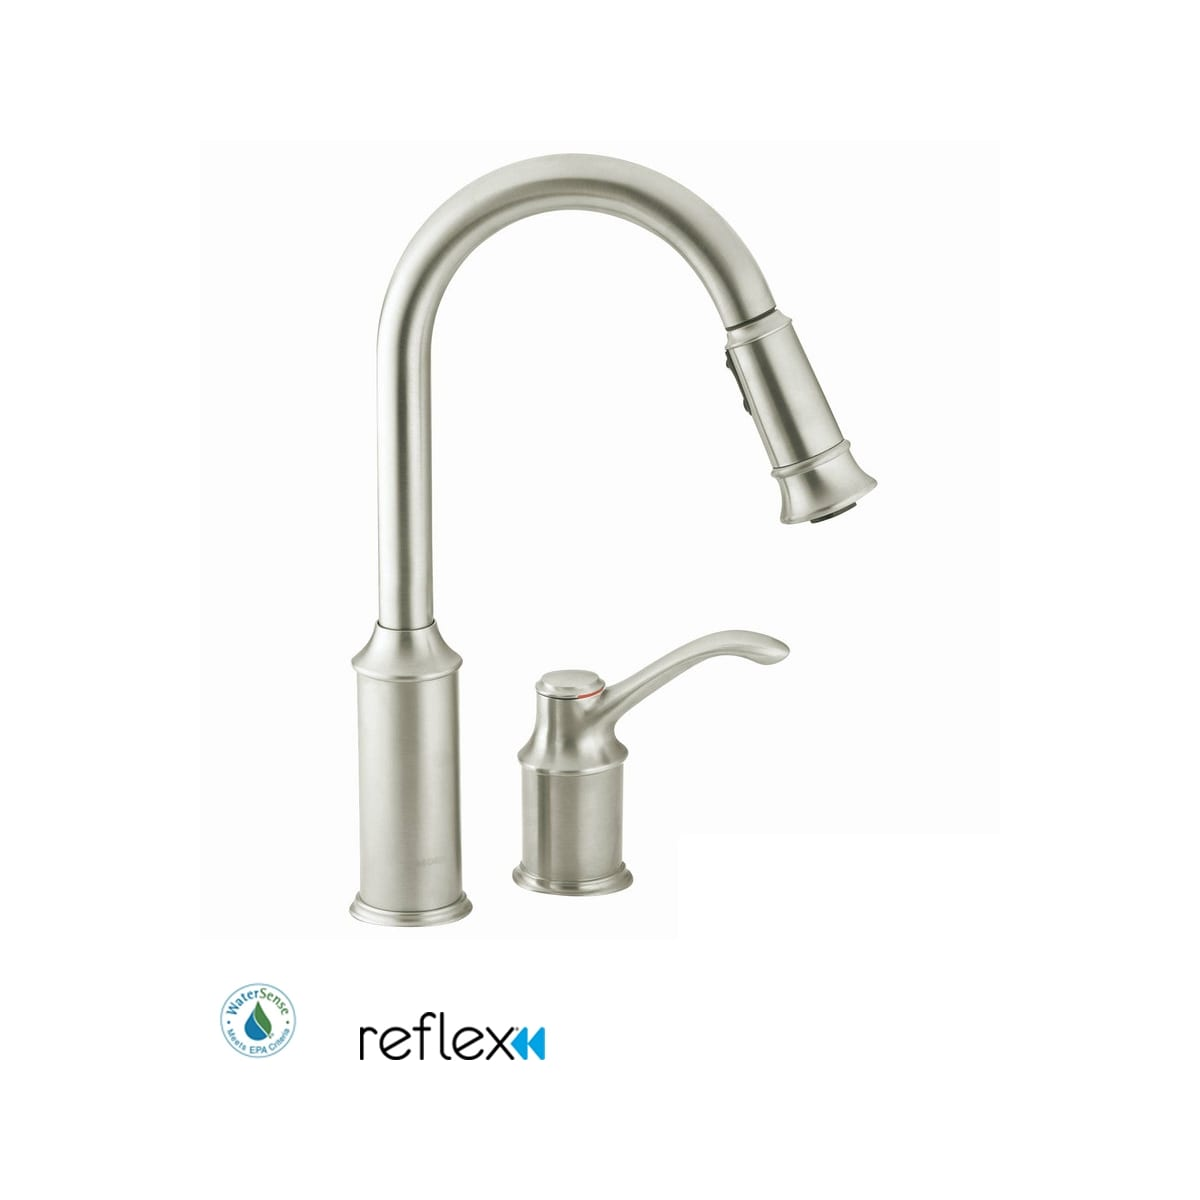 Moen 7590c Chrome Aberdeen Single Handle Pulldown Spray Kitchen Faucet With Reflex Technology Faucetdirect Com